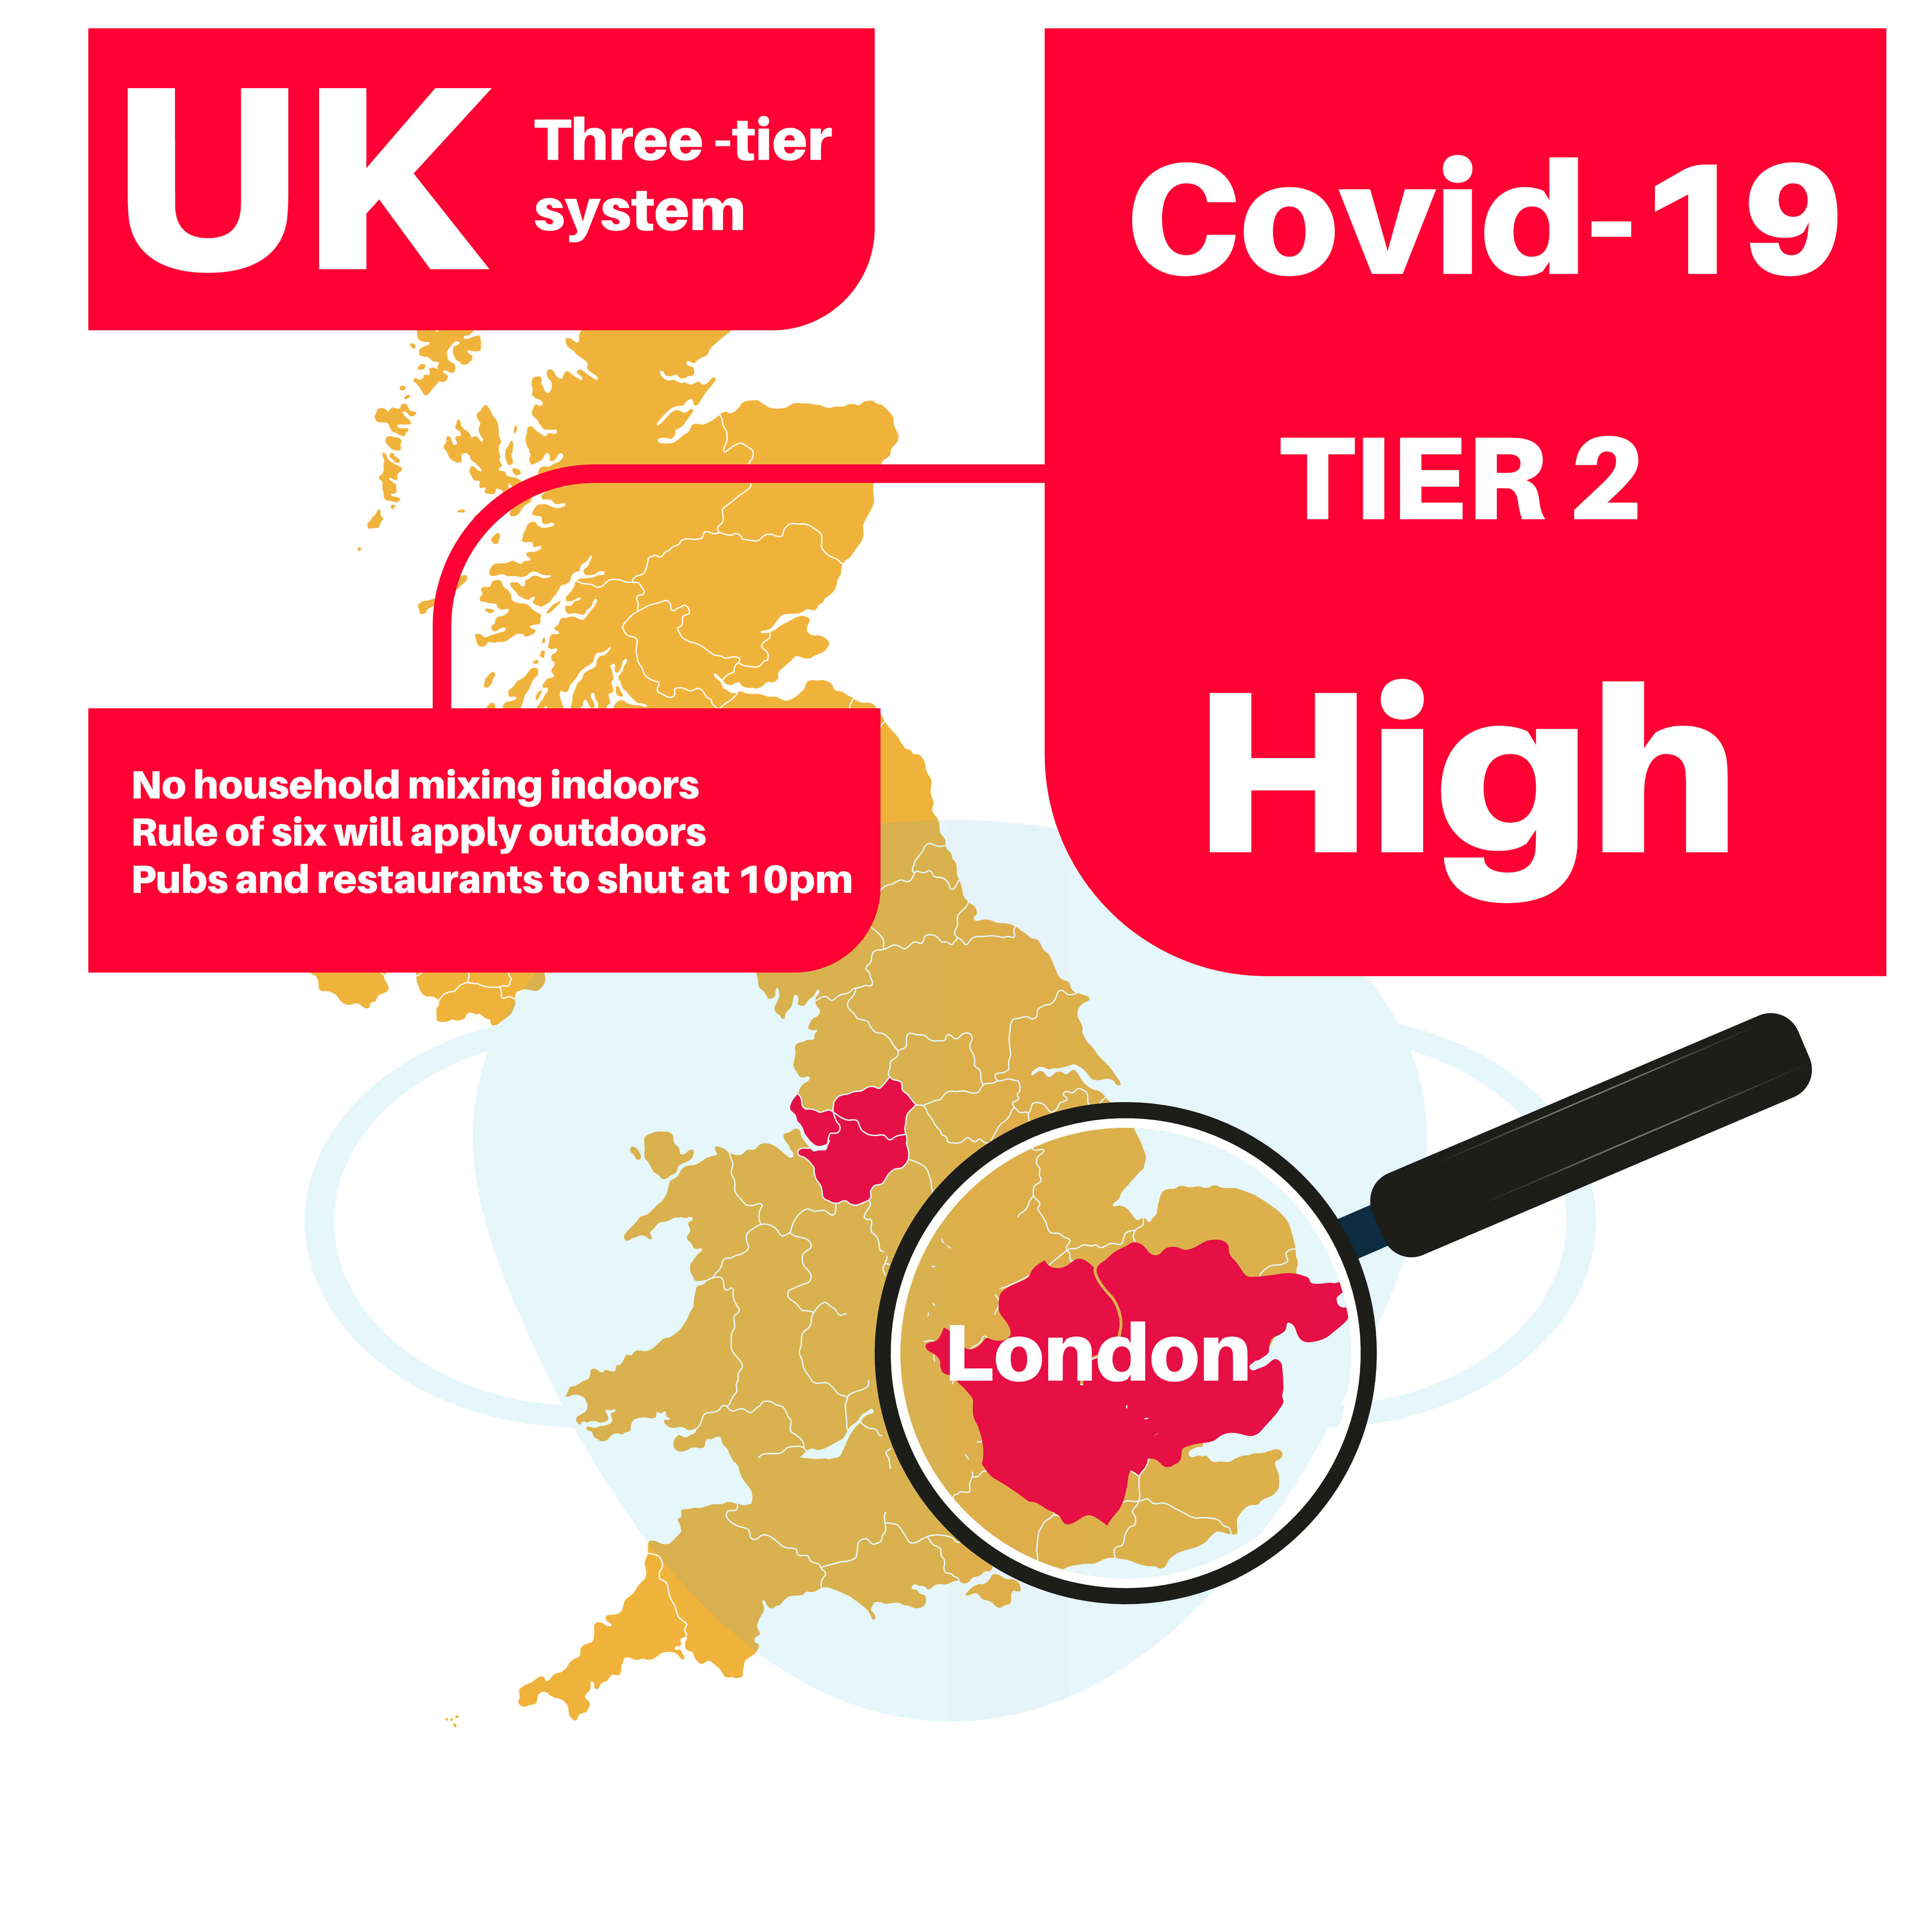 London Tier 2 Covid-19 UK infection Level High with map